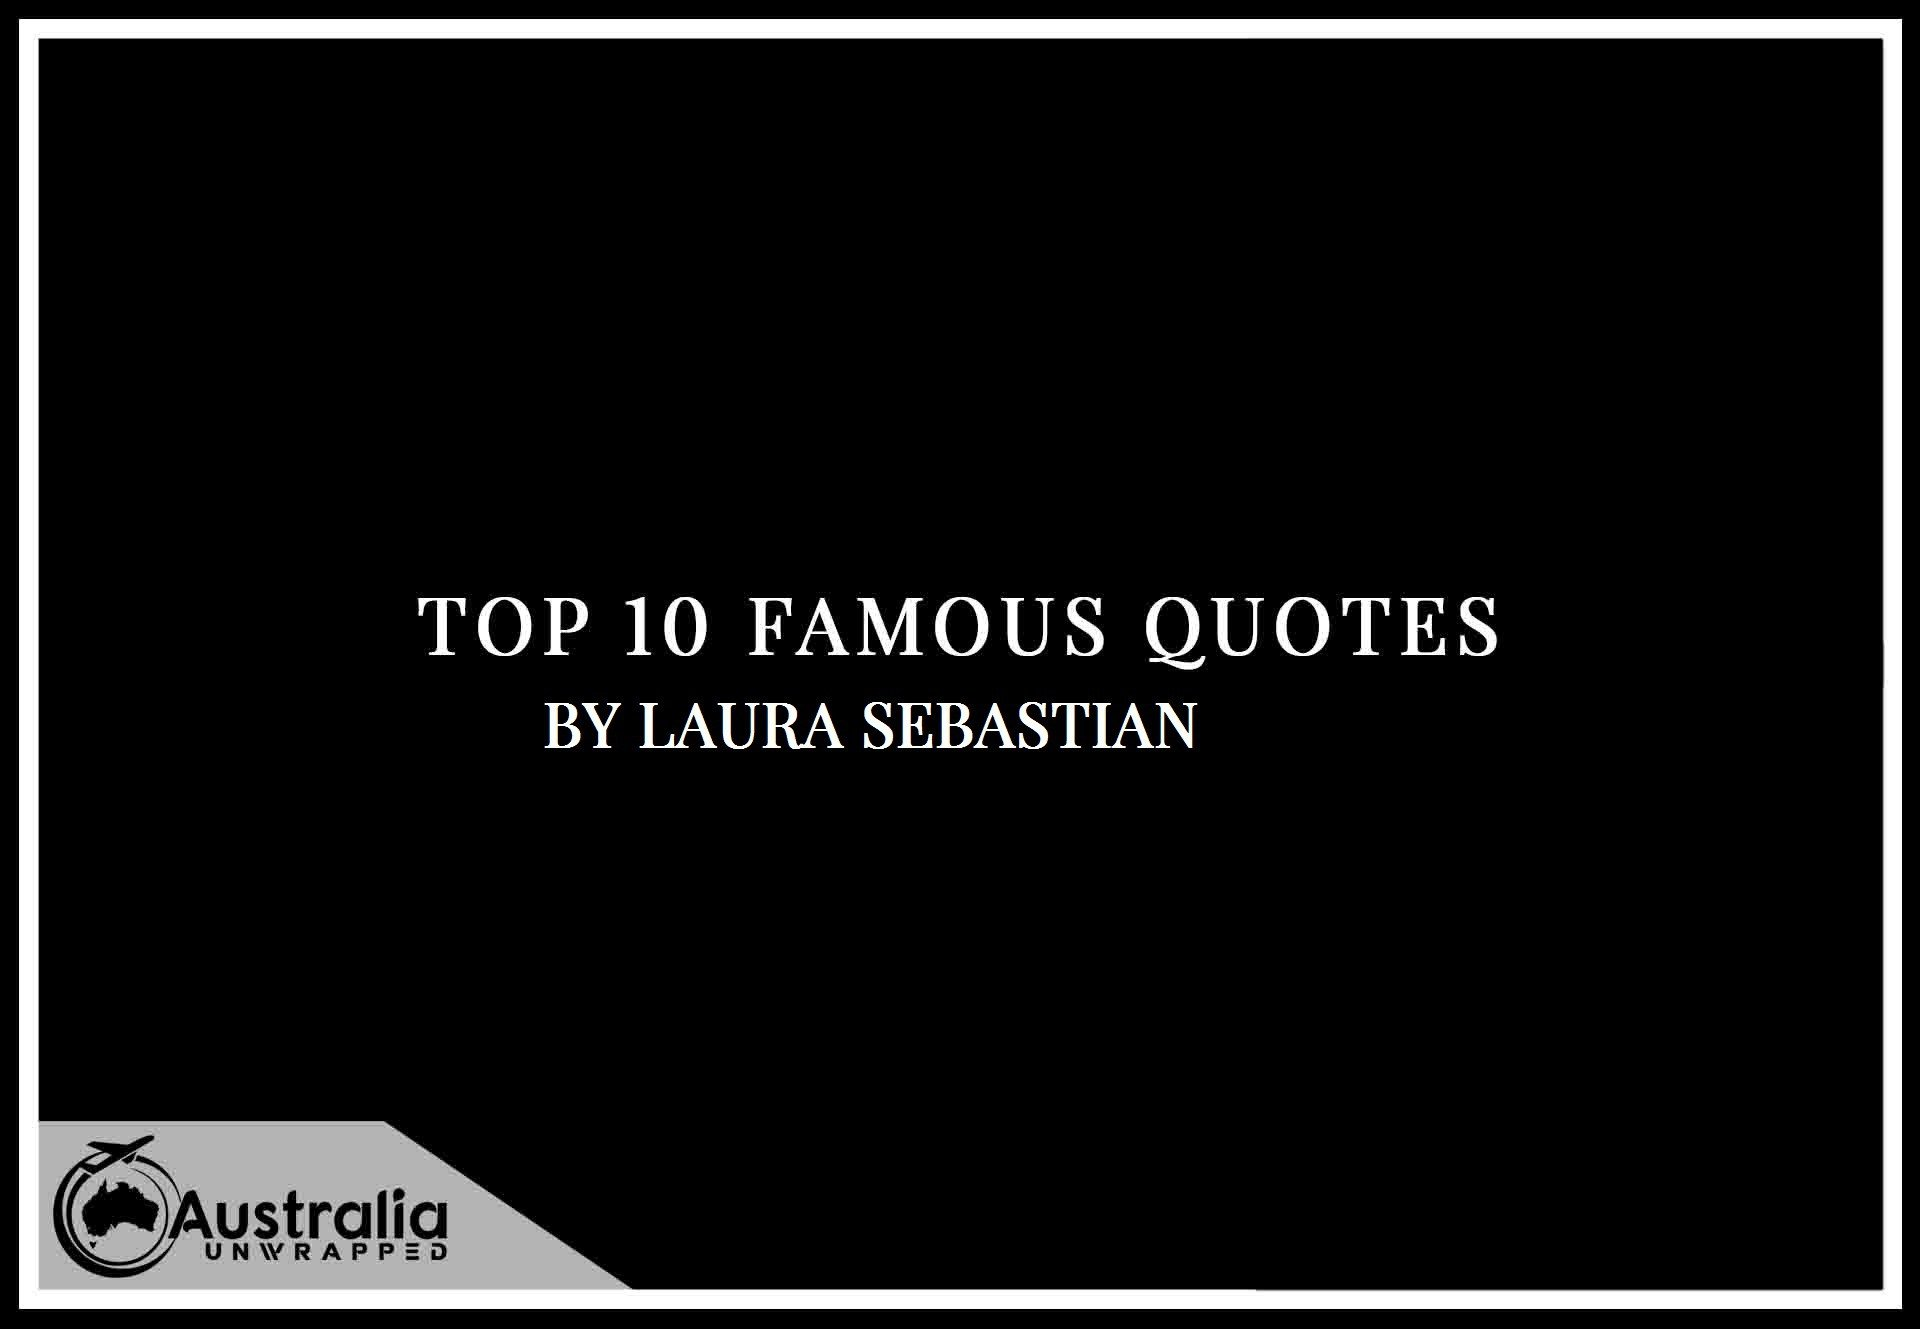 Laura Sebastian's Top 10 Popular and Famous Quotes